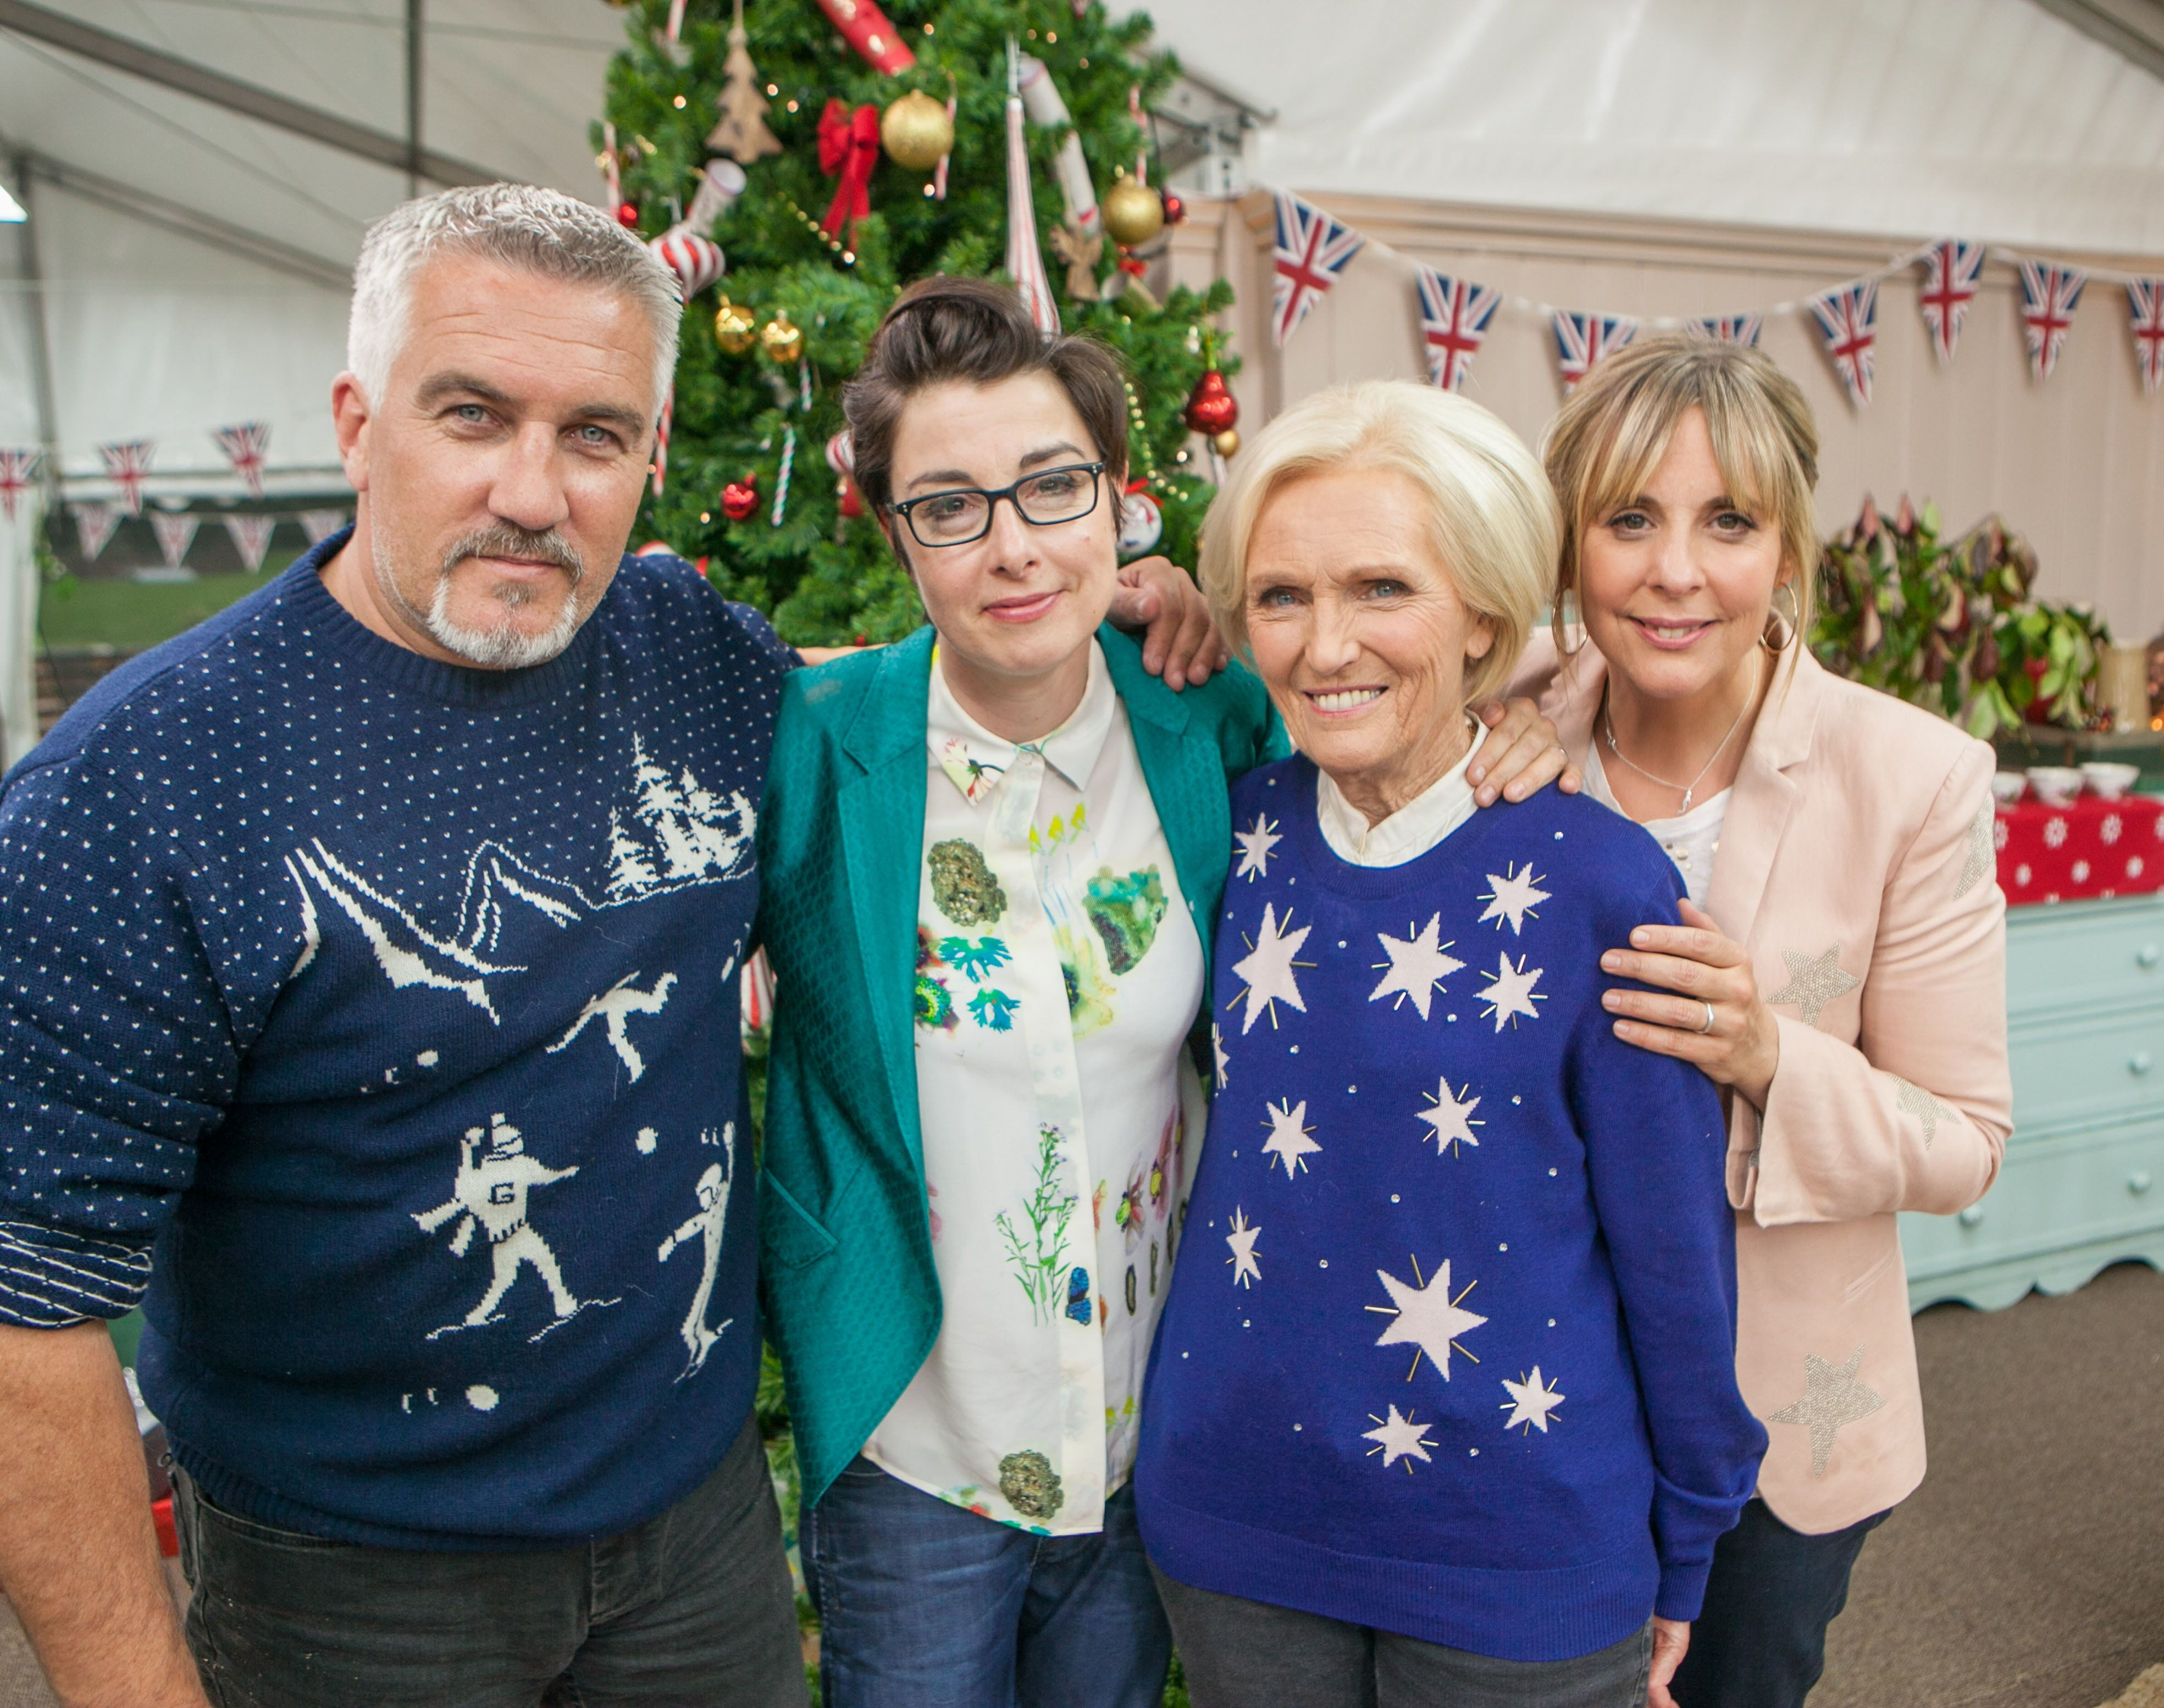 The current 'Bake Off' line-up will bow out after two BBC Christmas